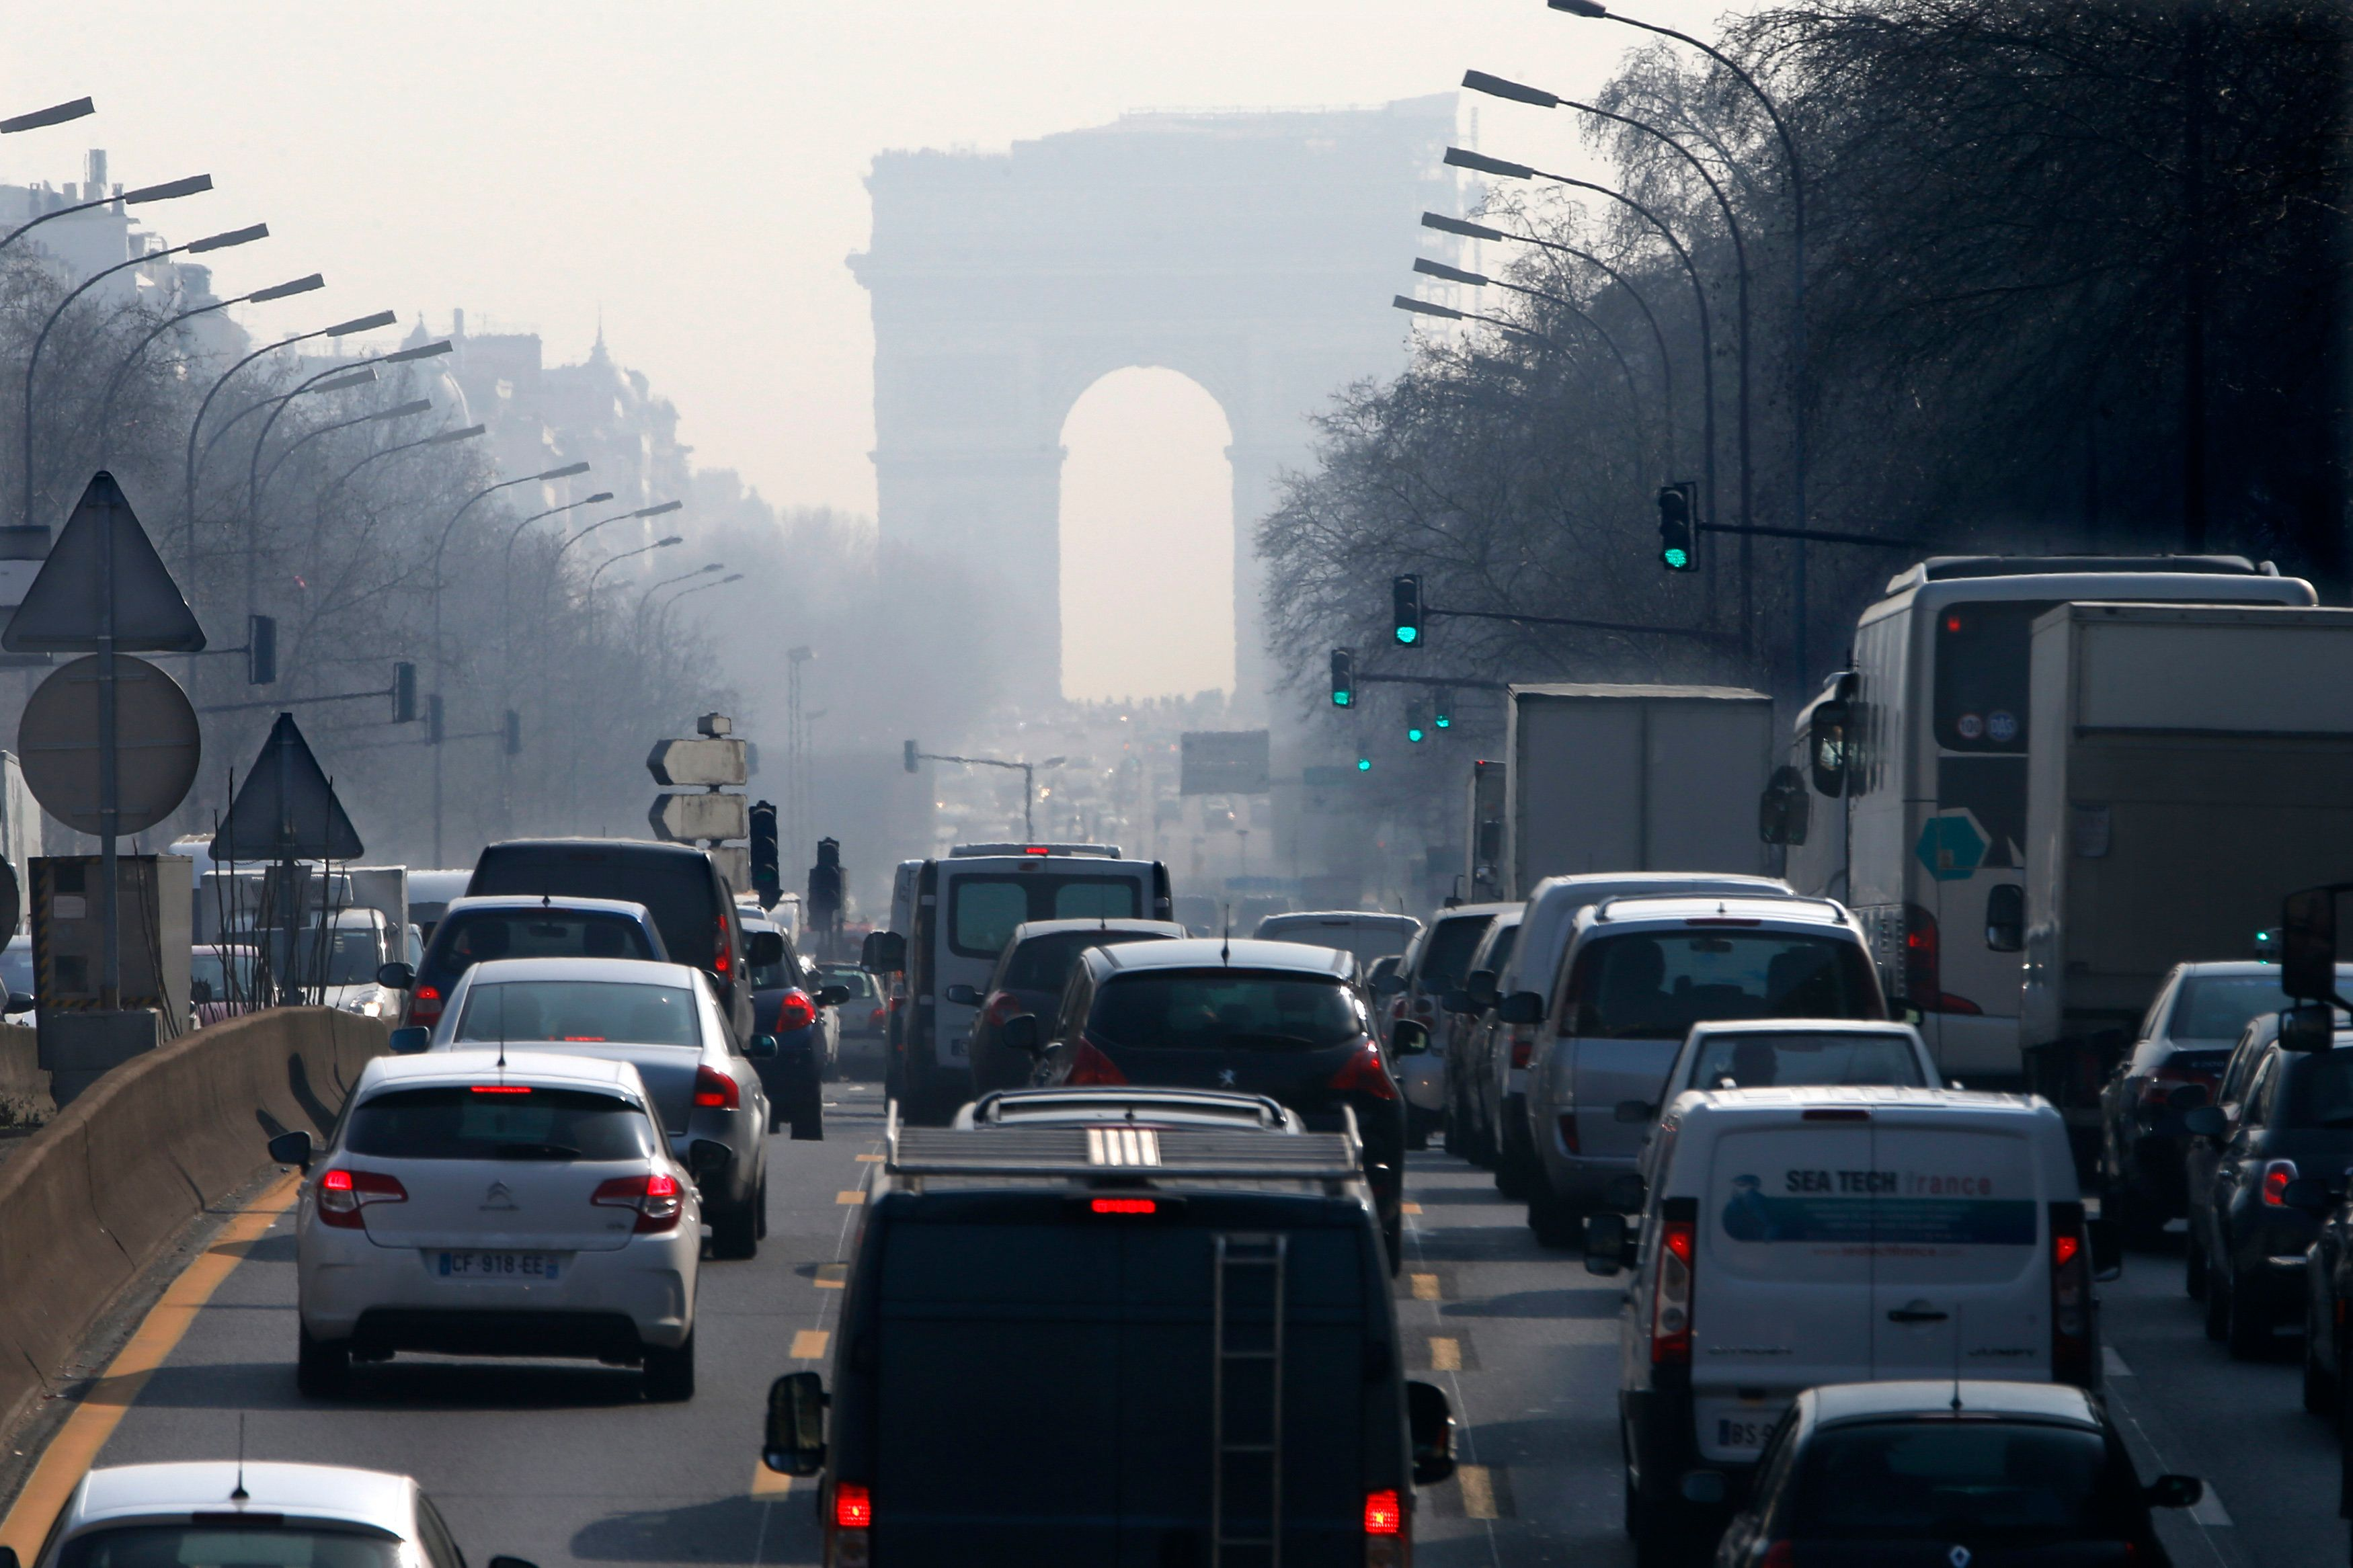 France Plans To Completely Ban All Petrol And Diesel Cars By